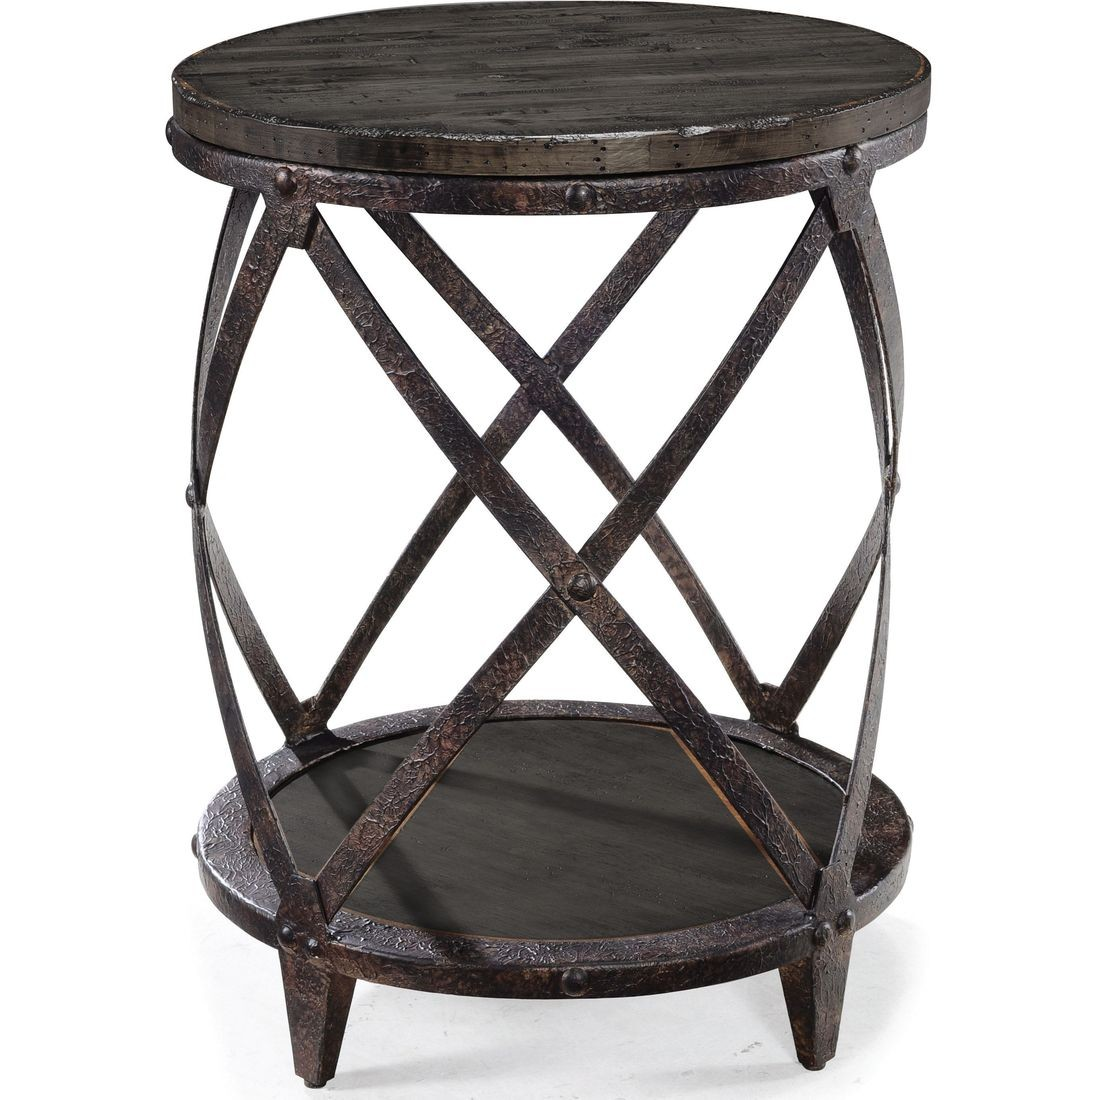 magnussen milford round accent table weathered charcoal and gray gunmetal antique wood kids side sheesham nest tables target swivel chair pottery barn trunk end west elm